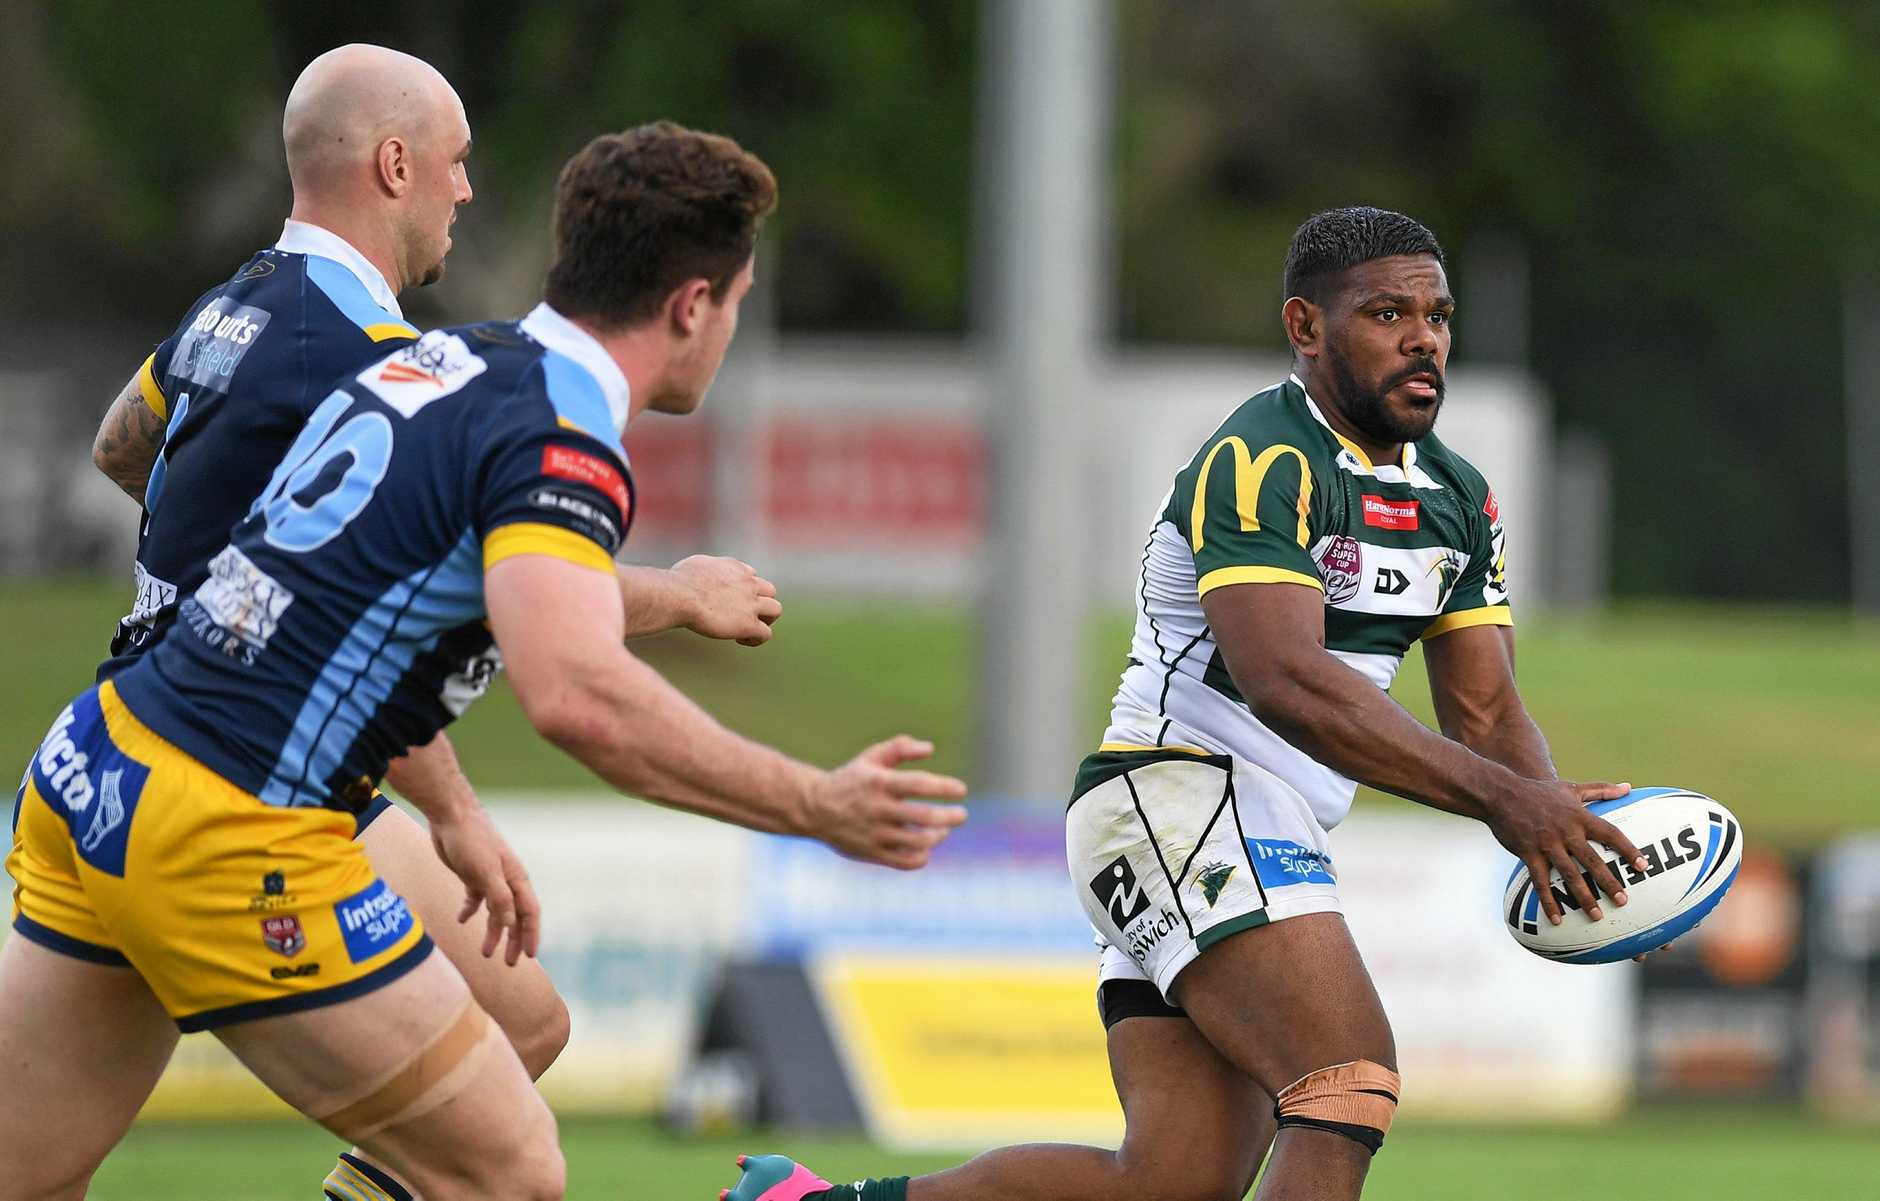 Ipswich Jets V Norths Devils Intrust Super Cup match played at North Ipswich Reserve on April 14, 2019. Kierran Moseley.